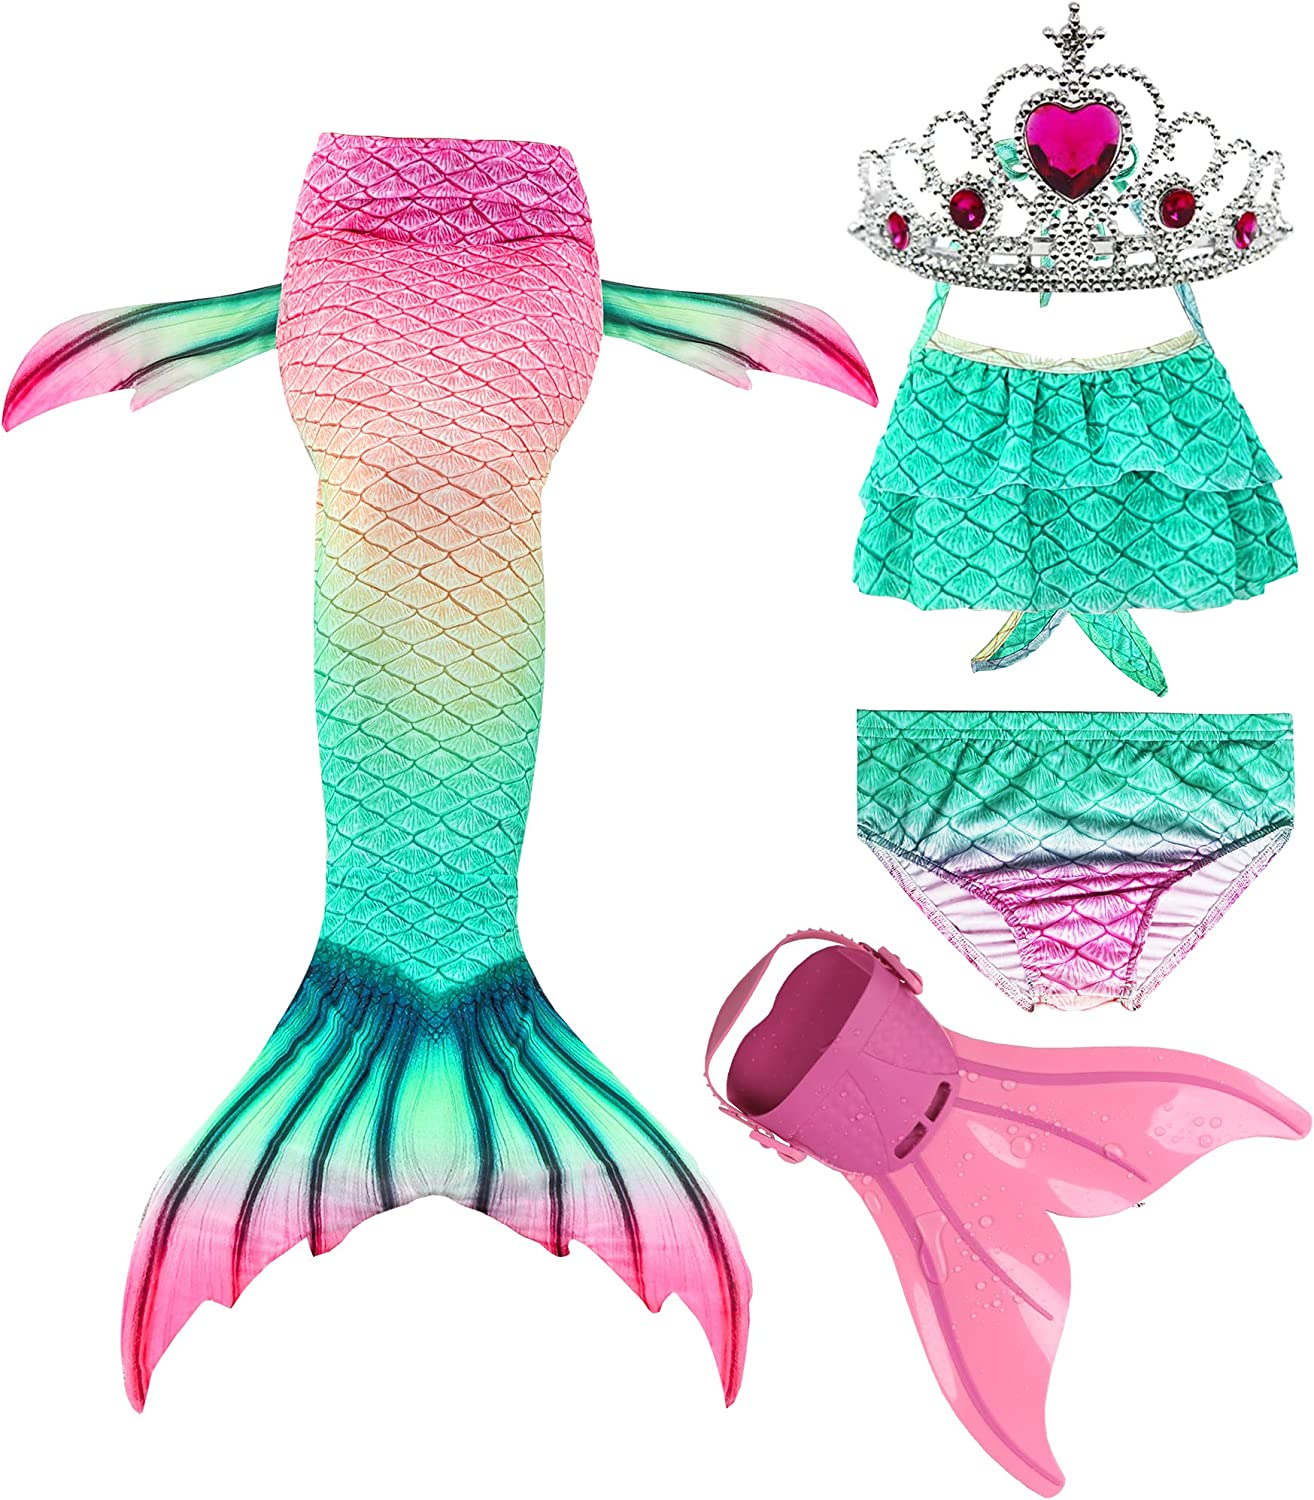 Limited Special Price Feeyakie Swimmable Mermaid Tails Max 80% OFF for Swims with Swimming Monofin